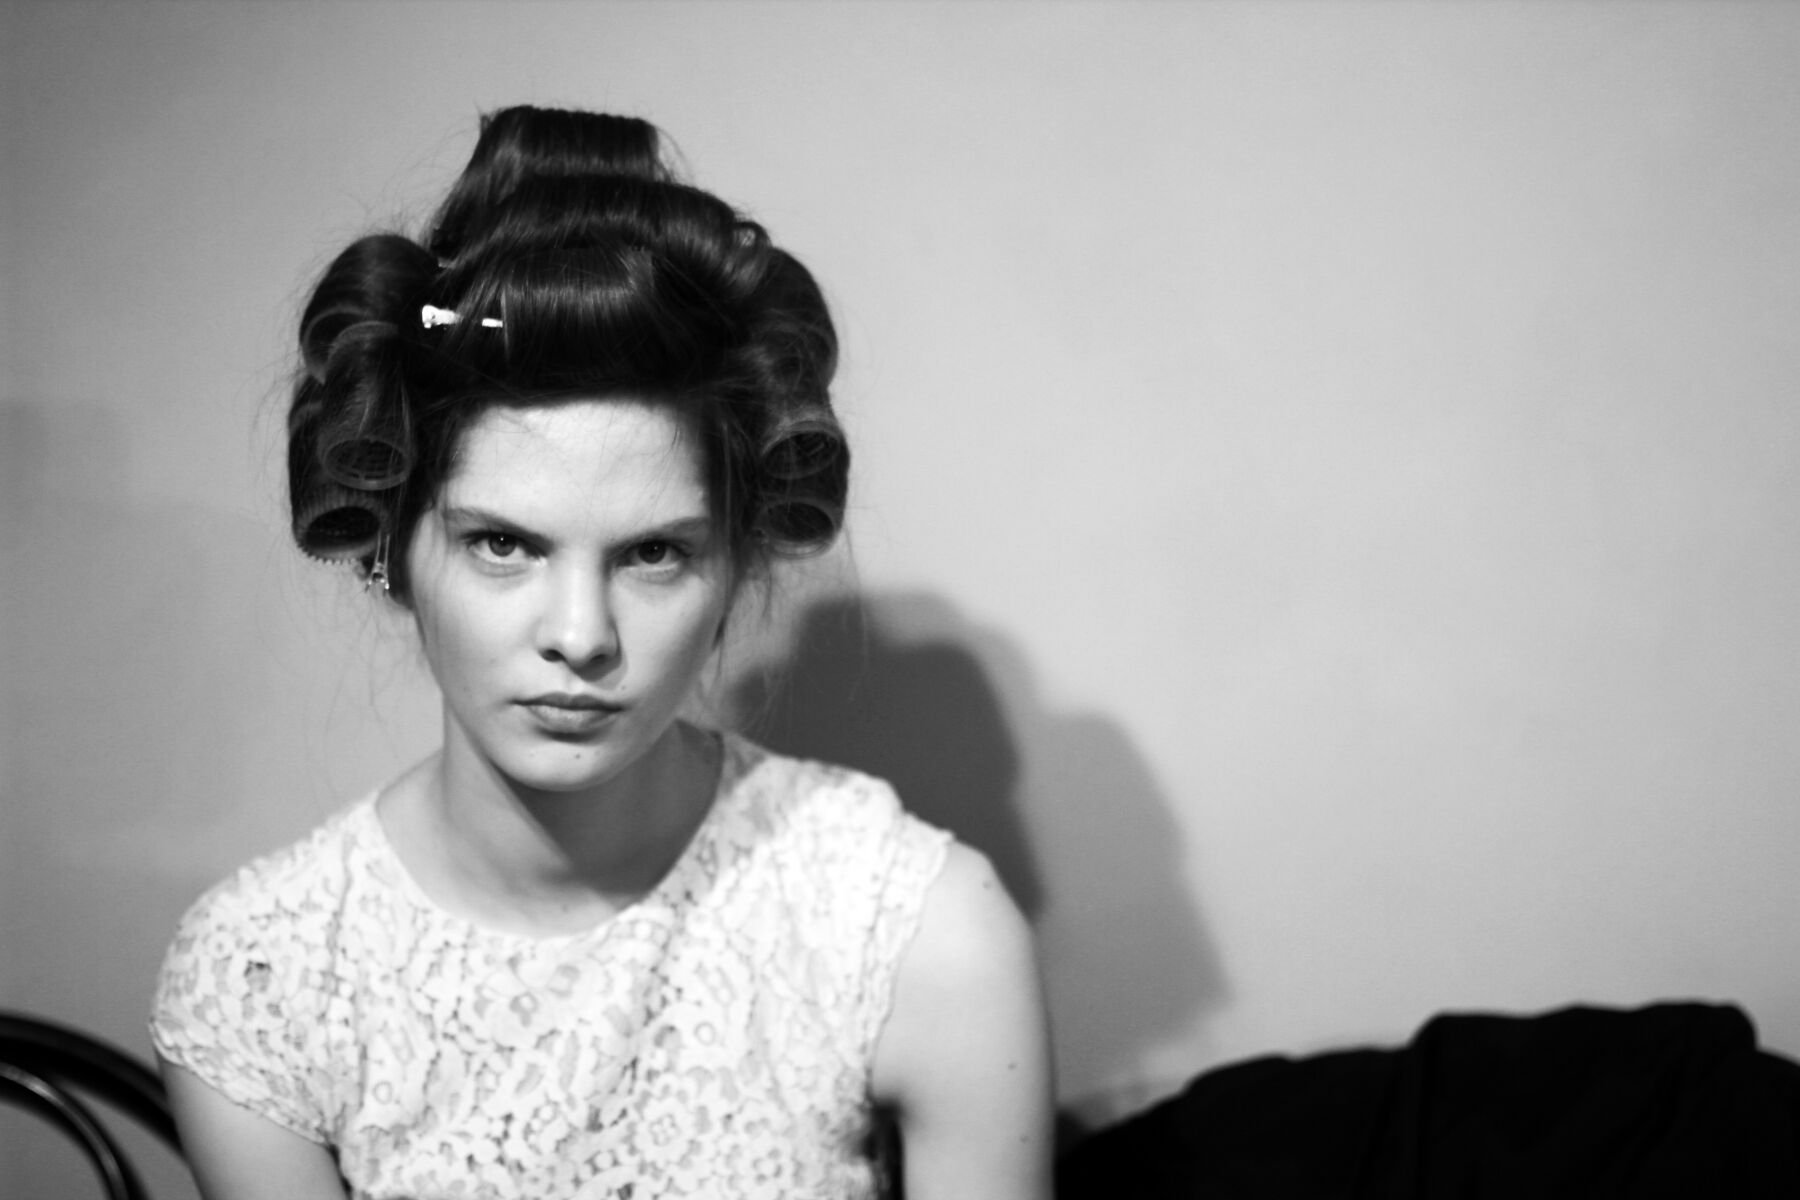 Backstage Andrea Incontri FW 2013 14 Model Hair Style